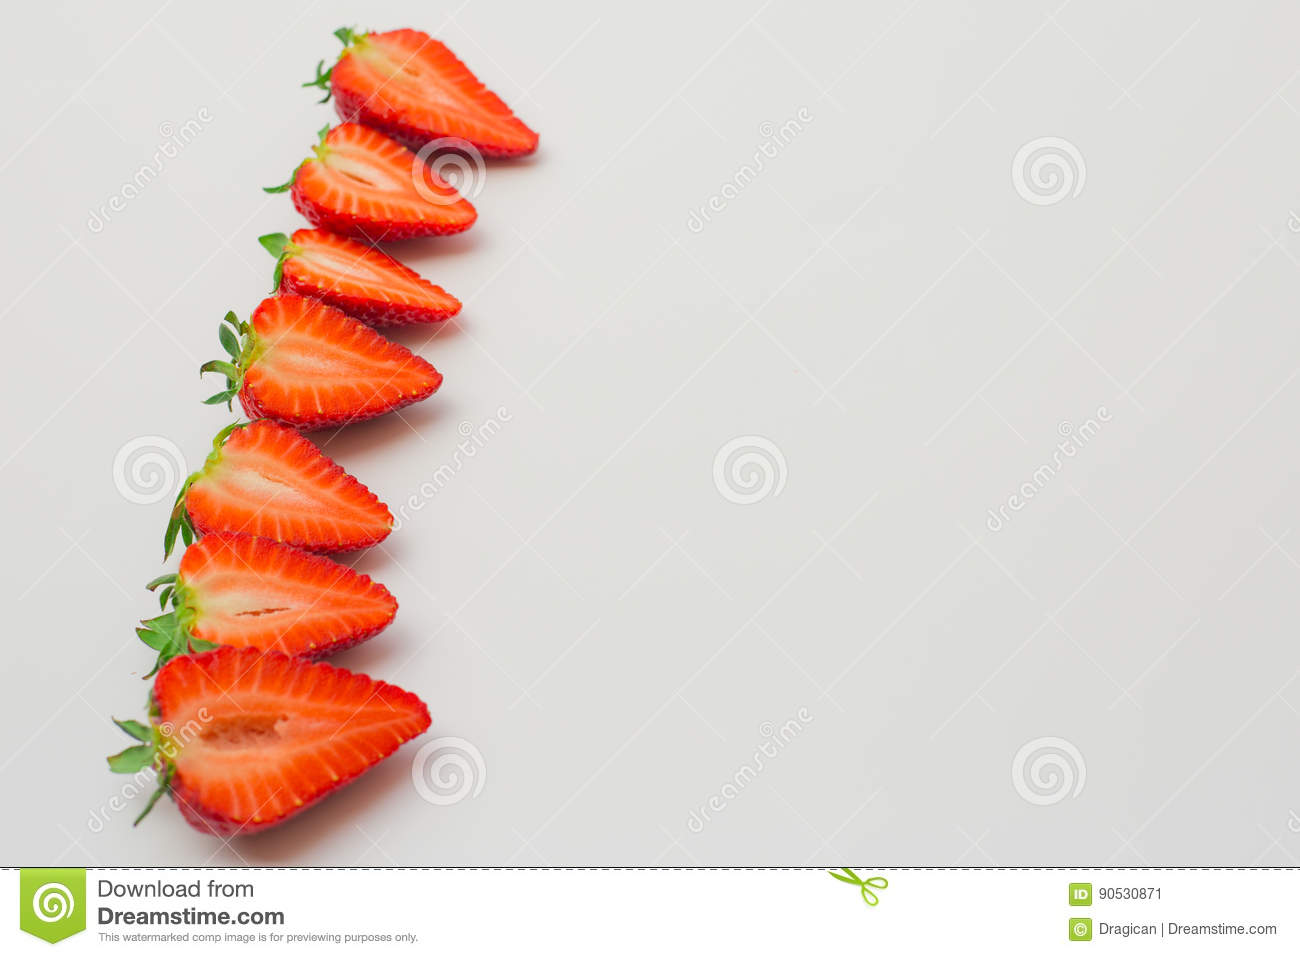 Fresh strawberries halved and arranged on a white background.